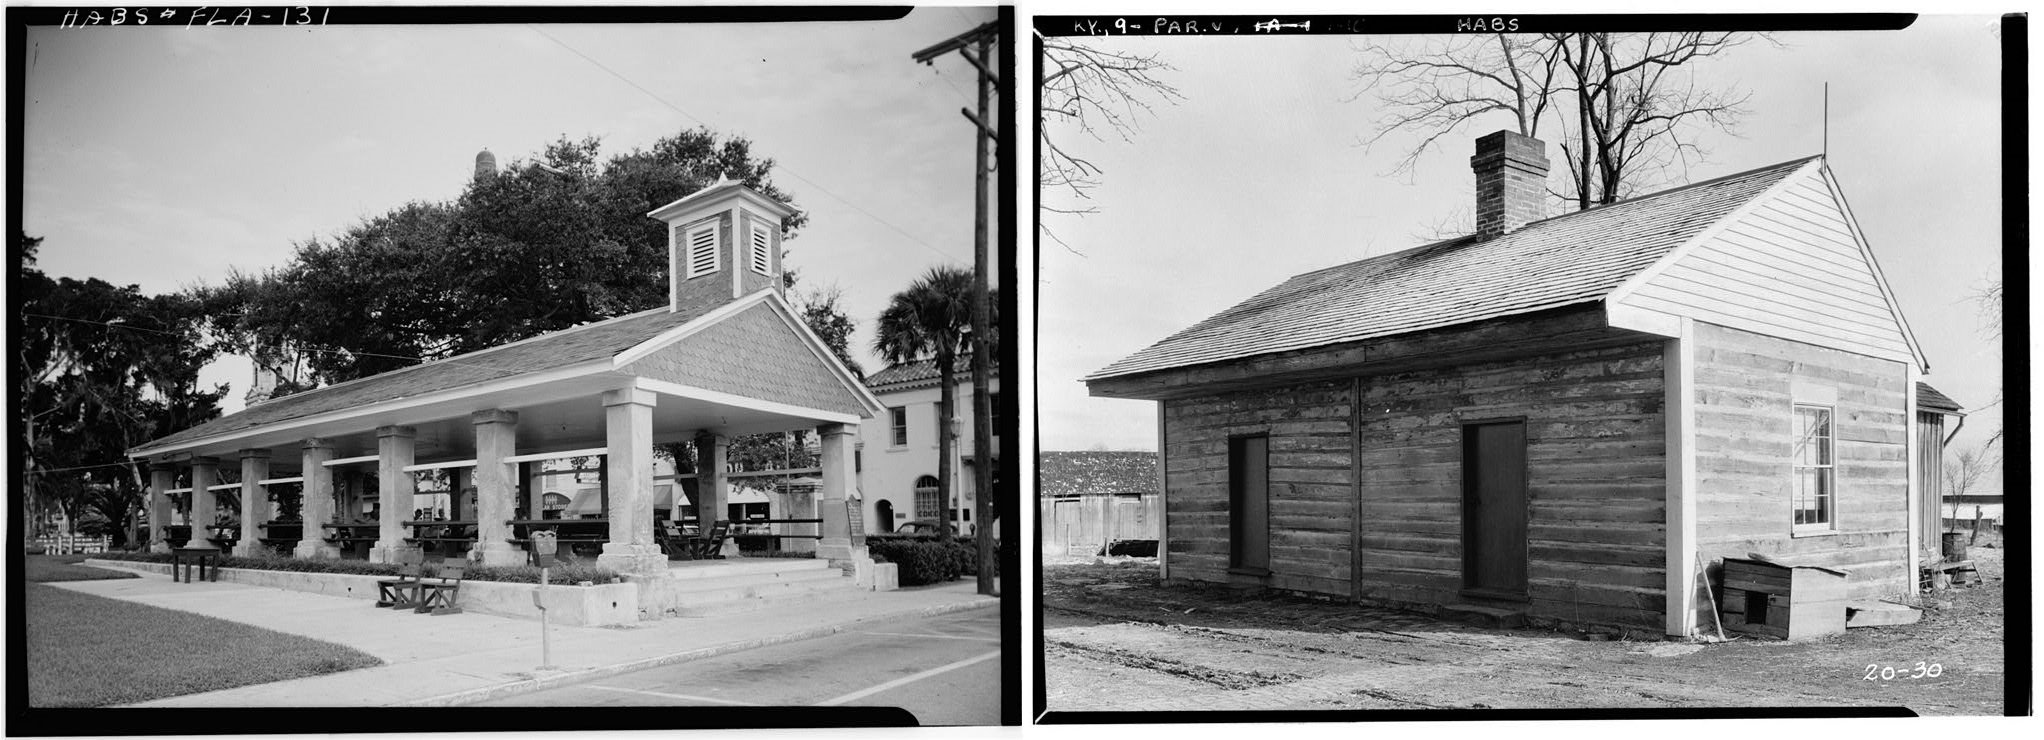 Left: Old slave market, St. Augustine, Fla. From loc.gov Right: Slave quarters, Bourbon County, KY. From loc.gov